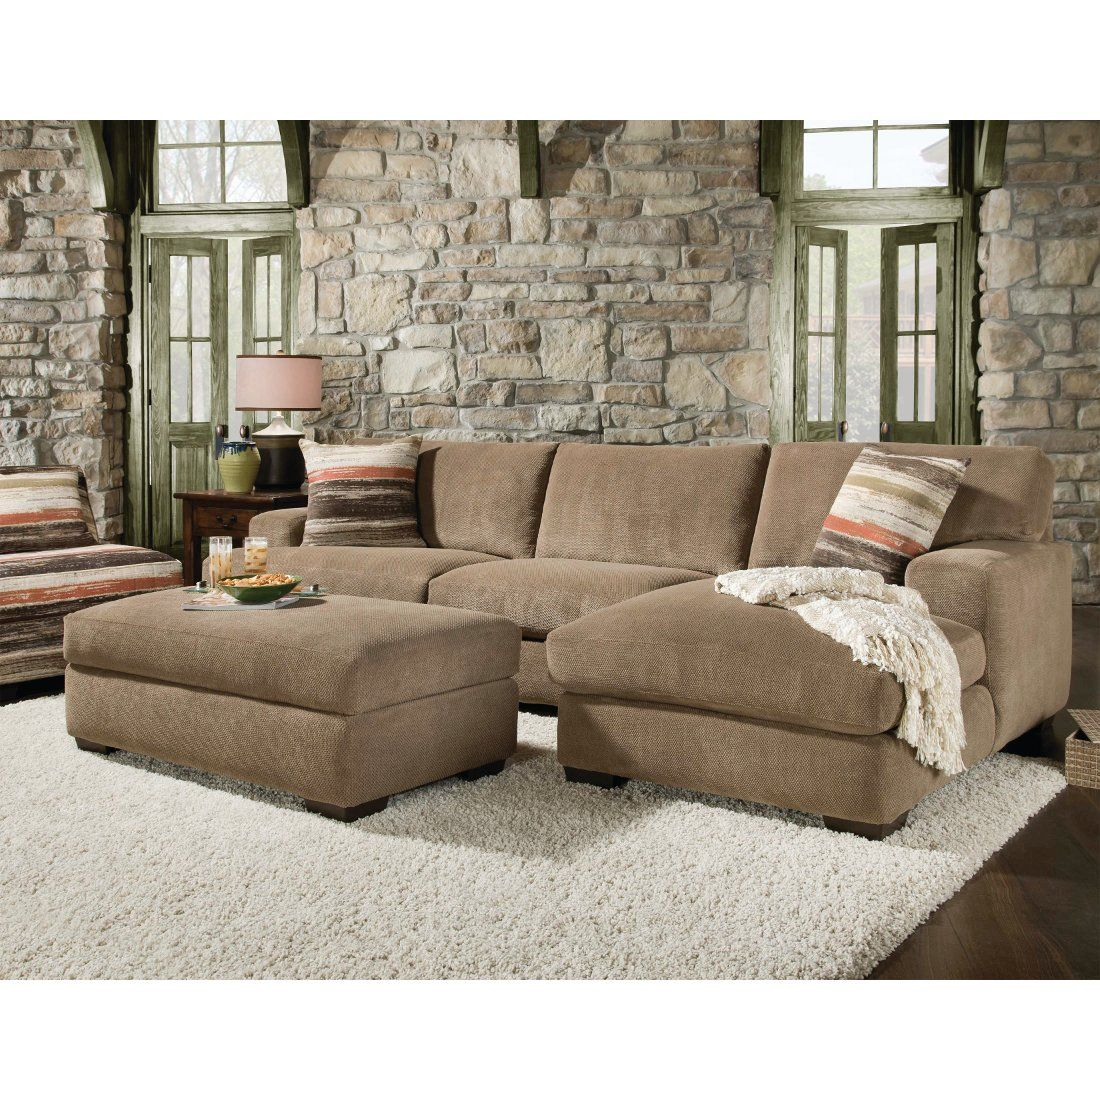 Mead Living Room Laf Sofa Raf Chaise Ottoman Sectional Cocoa 48bmeadcocoamid Sectional Sofa With Chaise Small Sectional Sofa Couch With Chaise